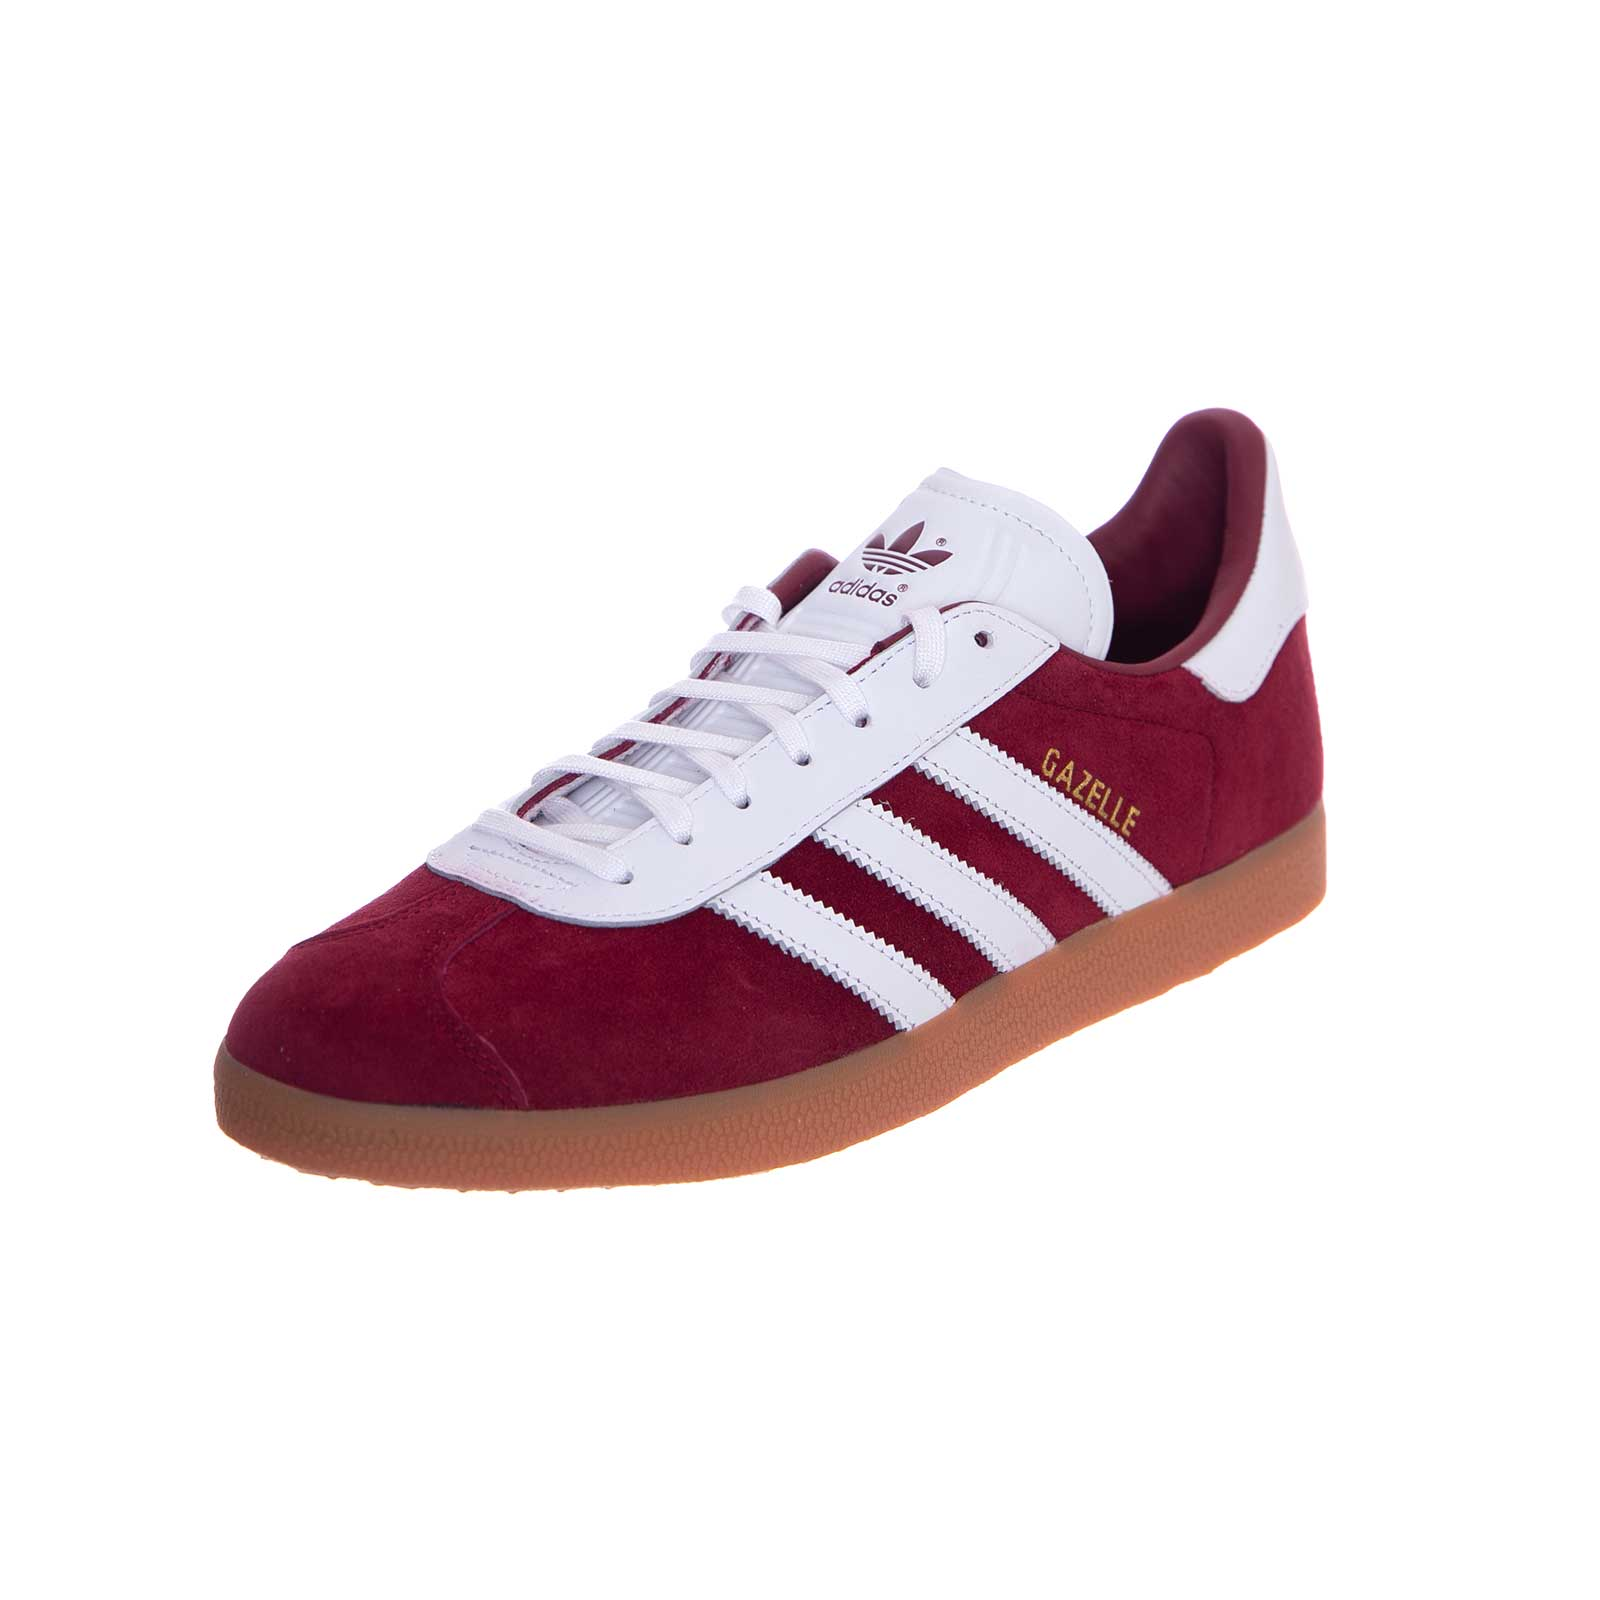 adidas zapatillas burgundy